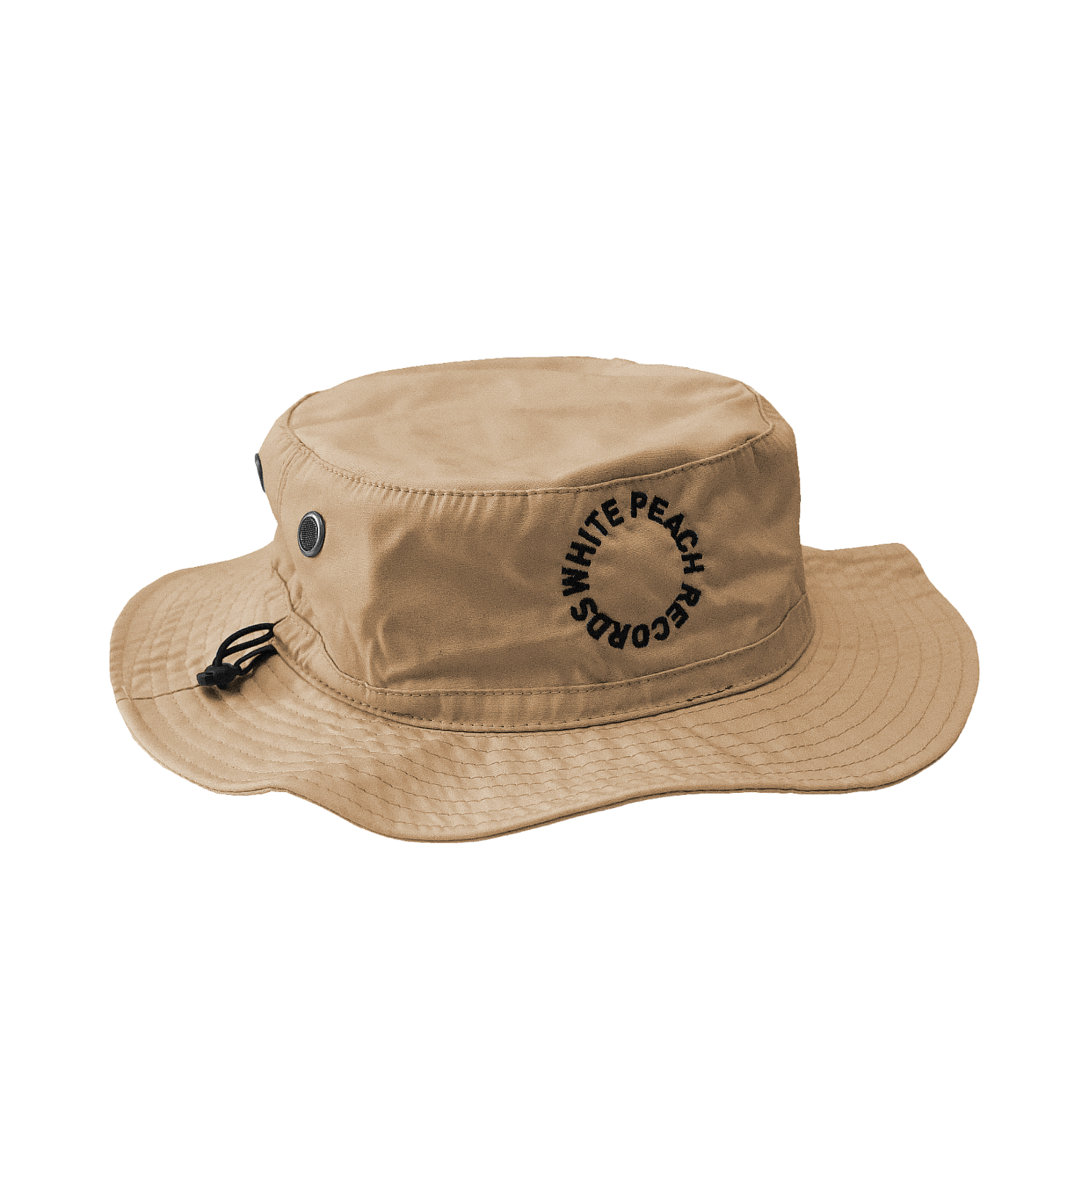 Wpt012 Stone Bucket Hat W Black Embroidery White Peach